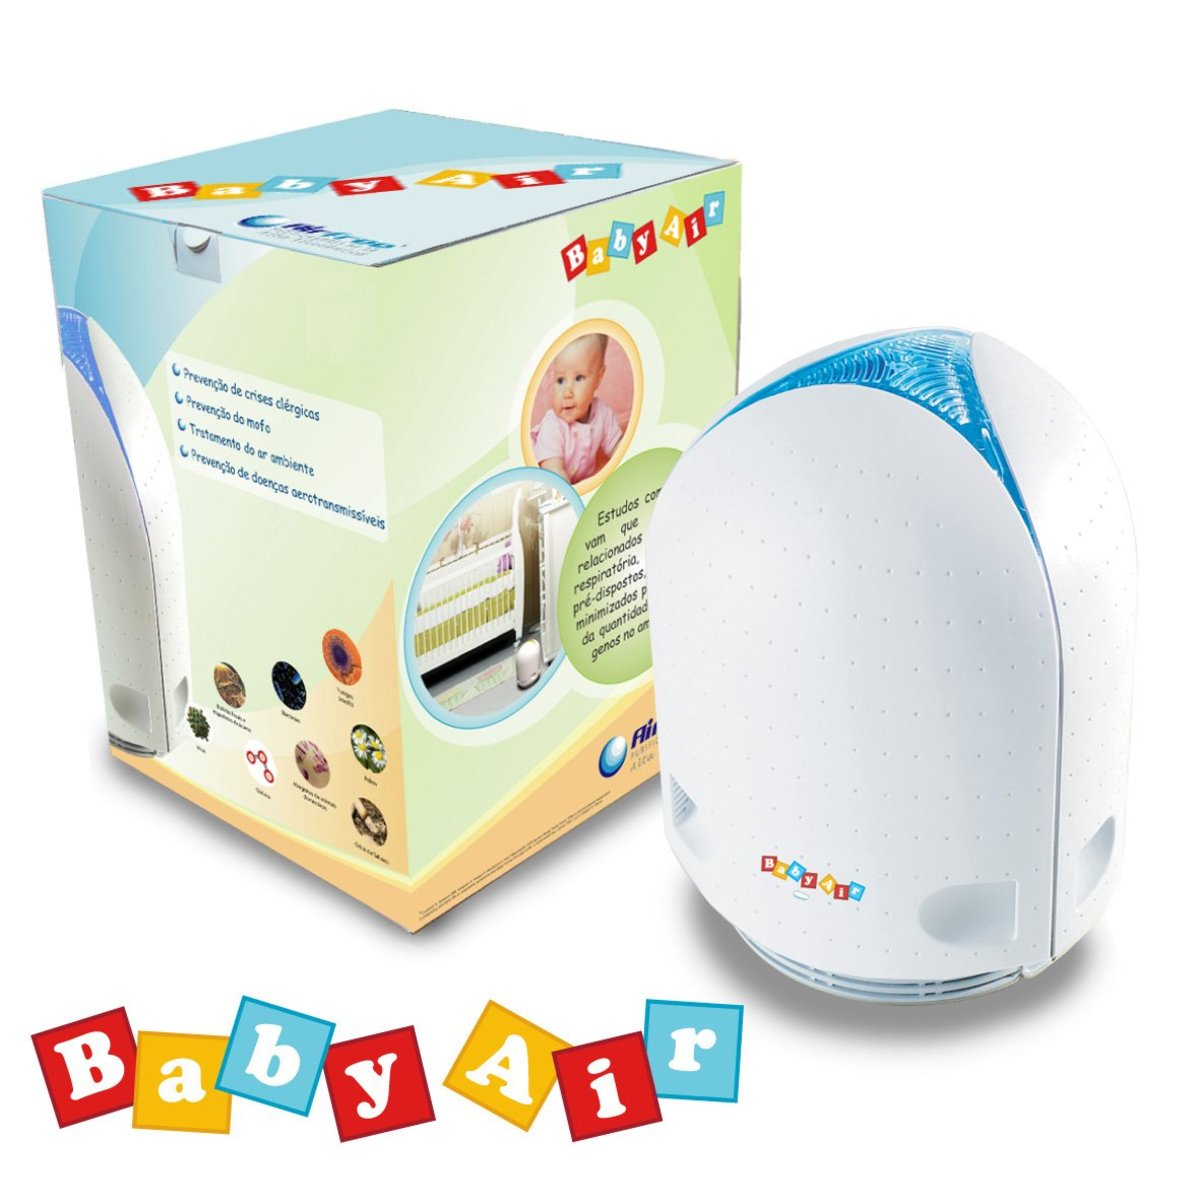 Image of Airfree BABYAIR Air purifier